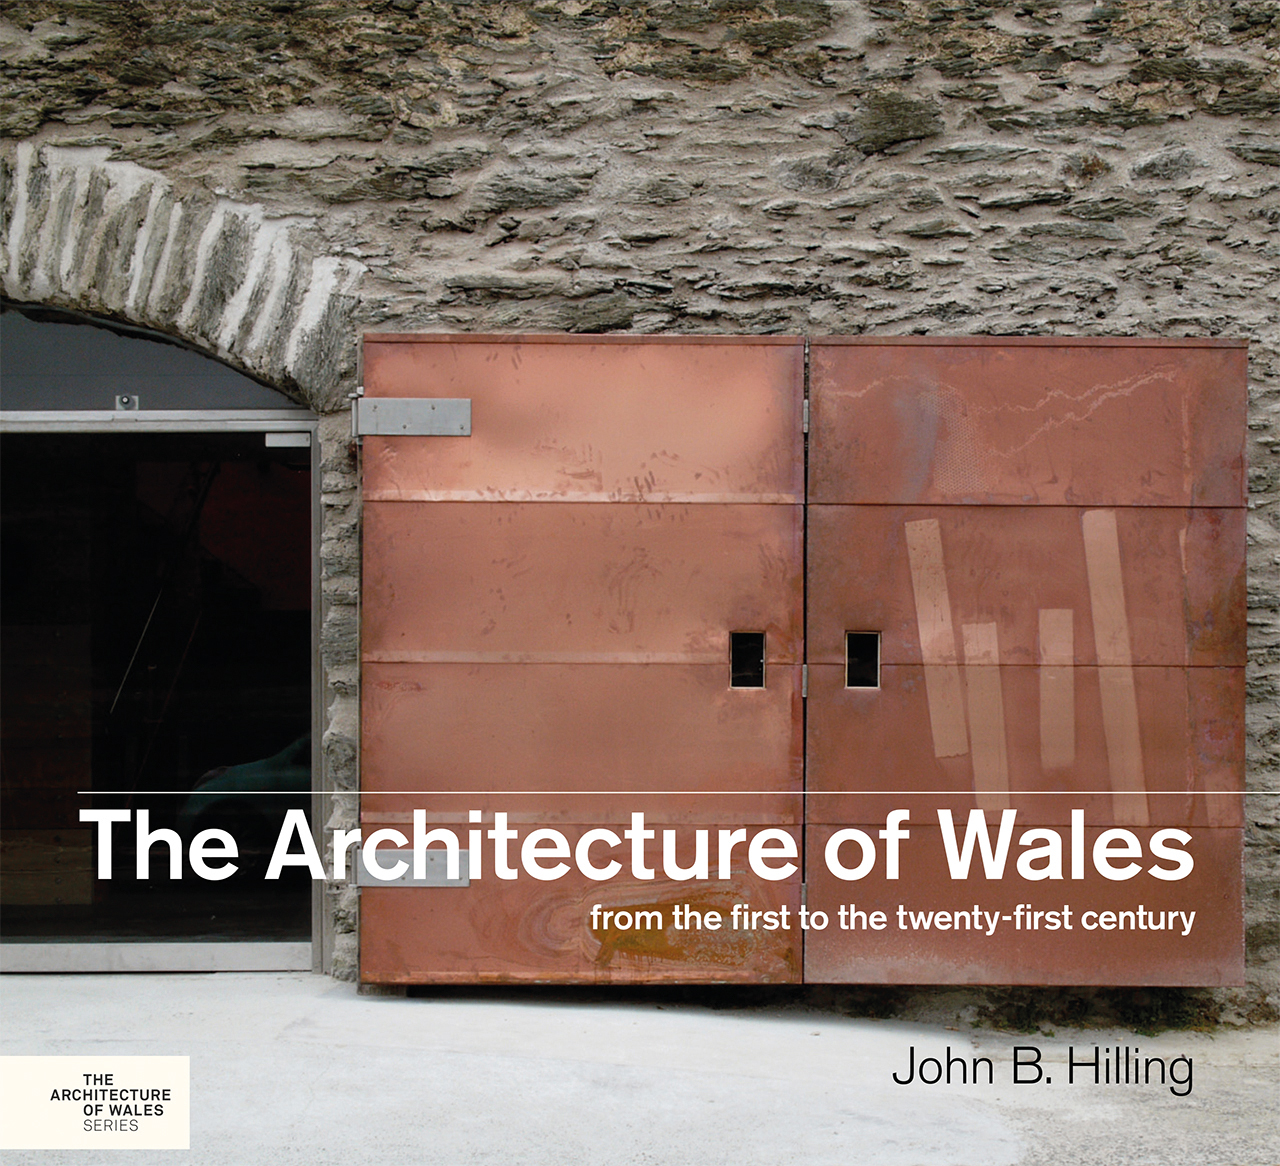 The Architecture of Wales: From the First to the Twenty - First Century